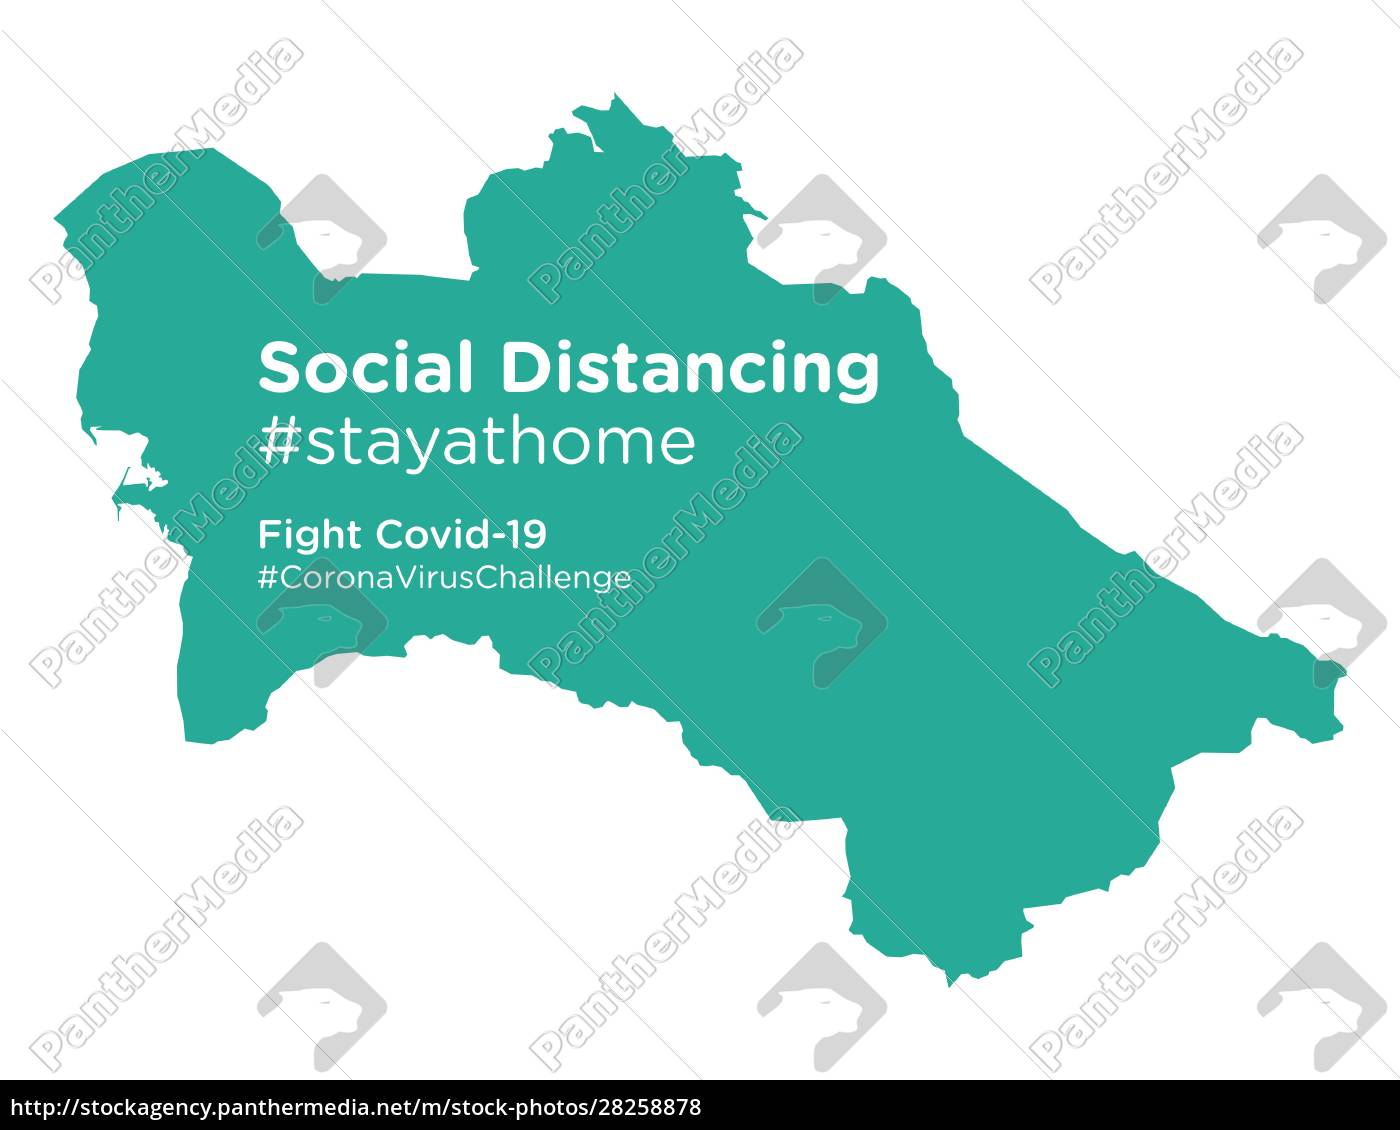 turkmenistan, map, with, social, distancing, stayathome - 28258878